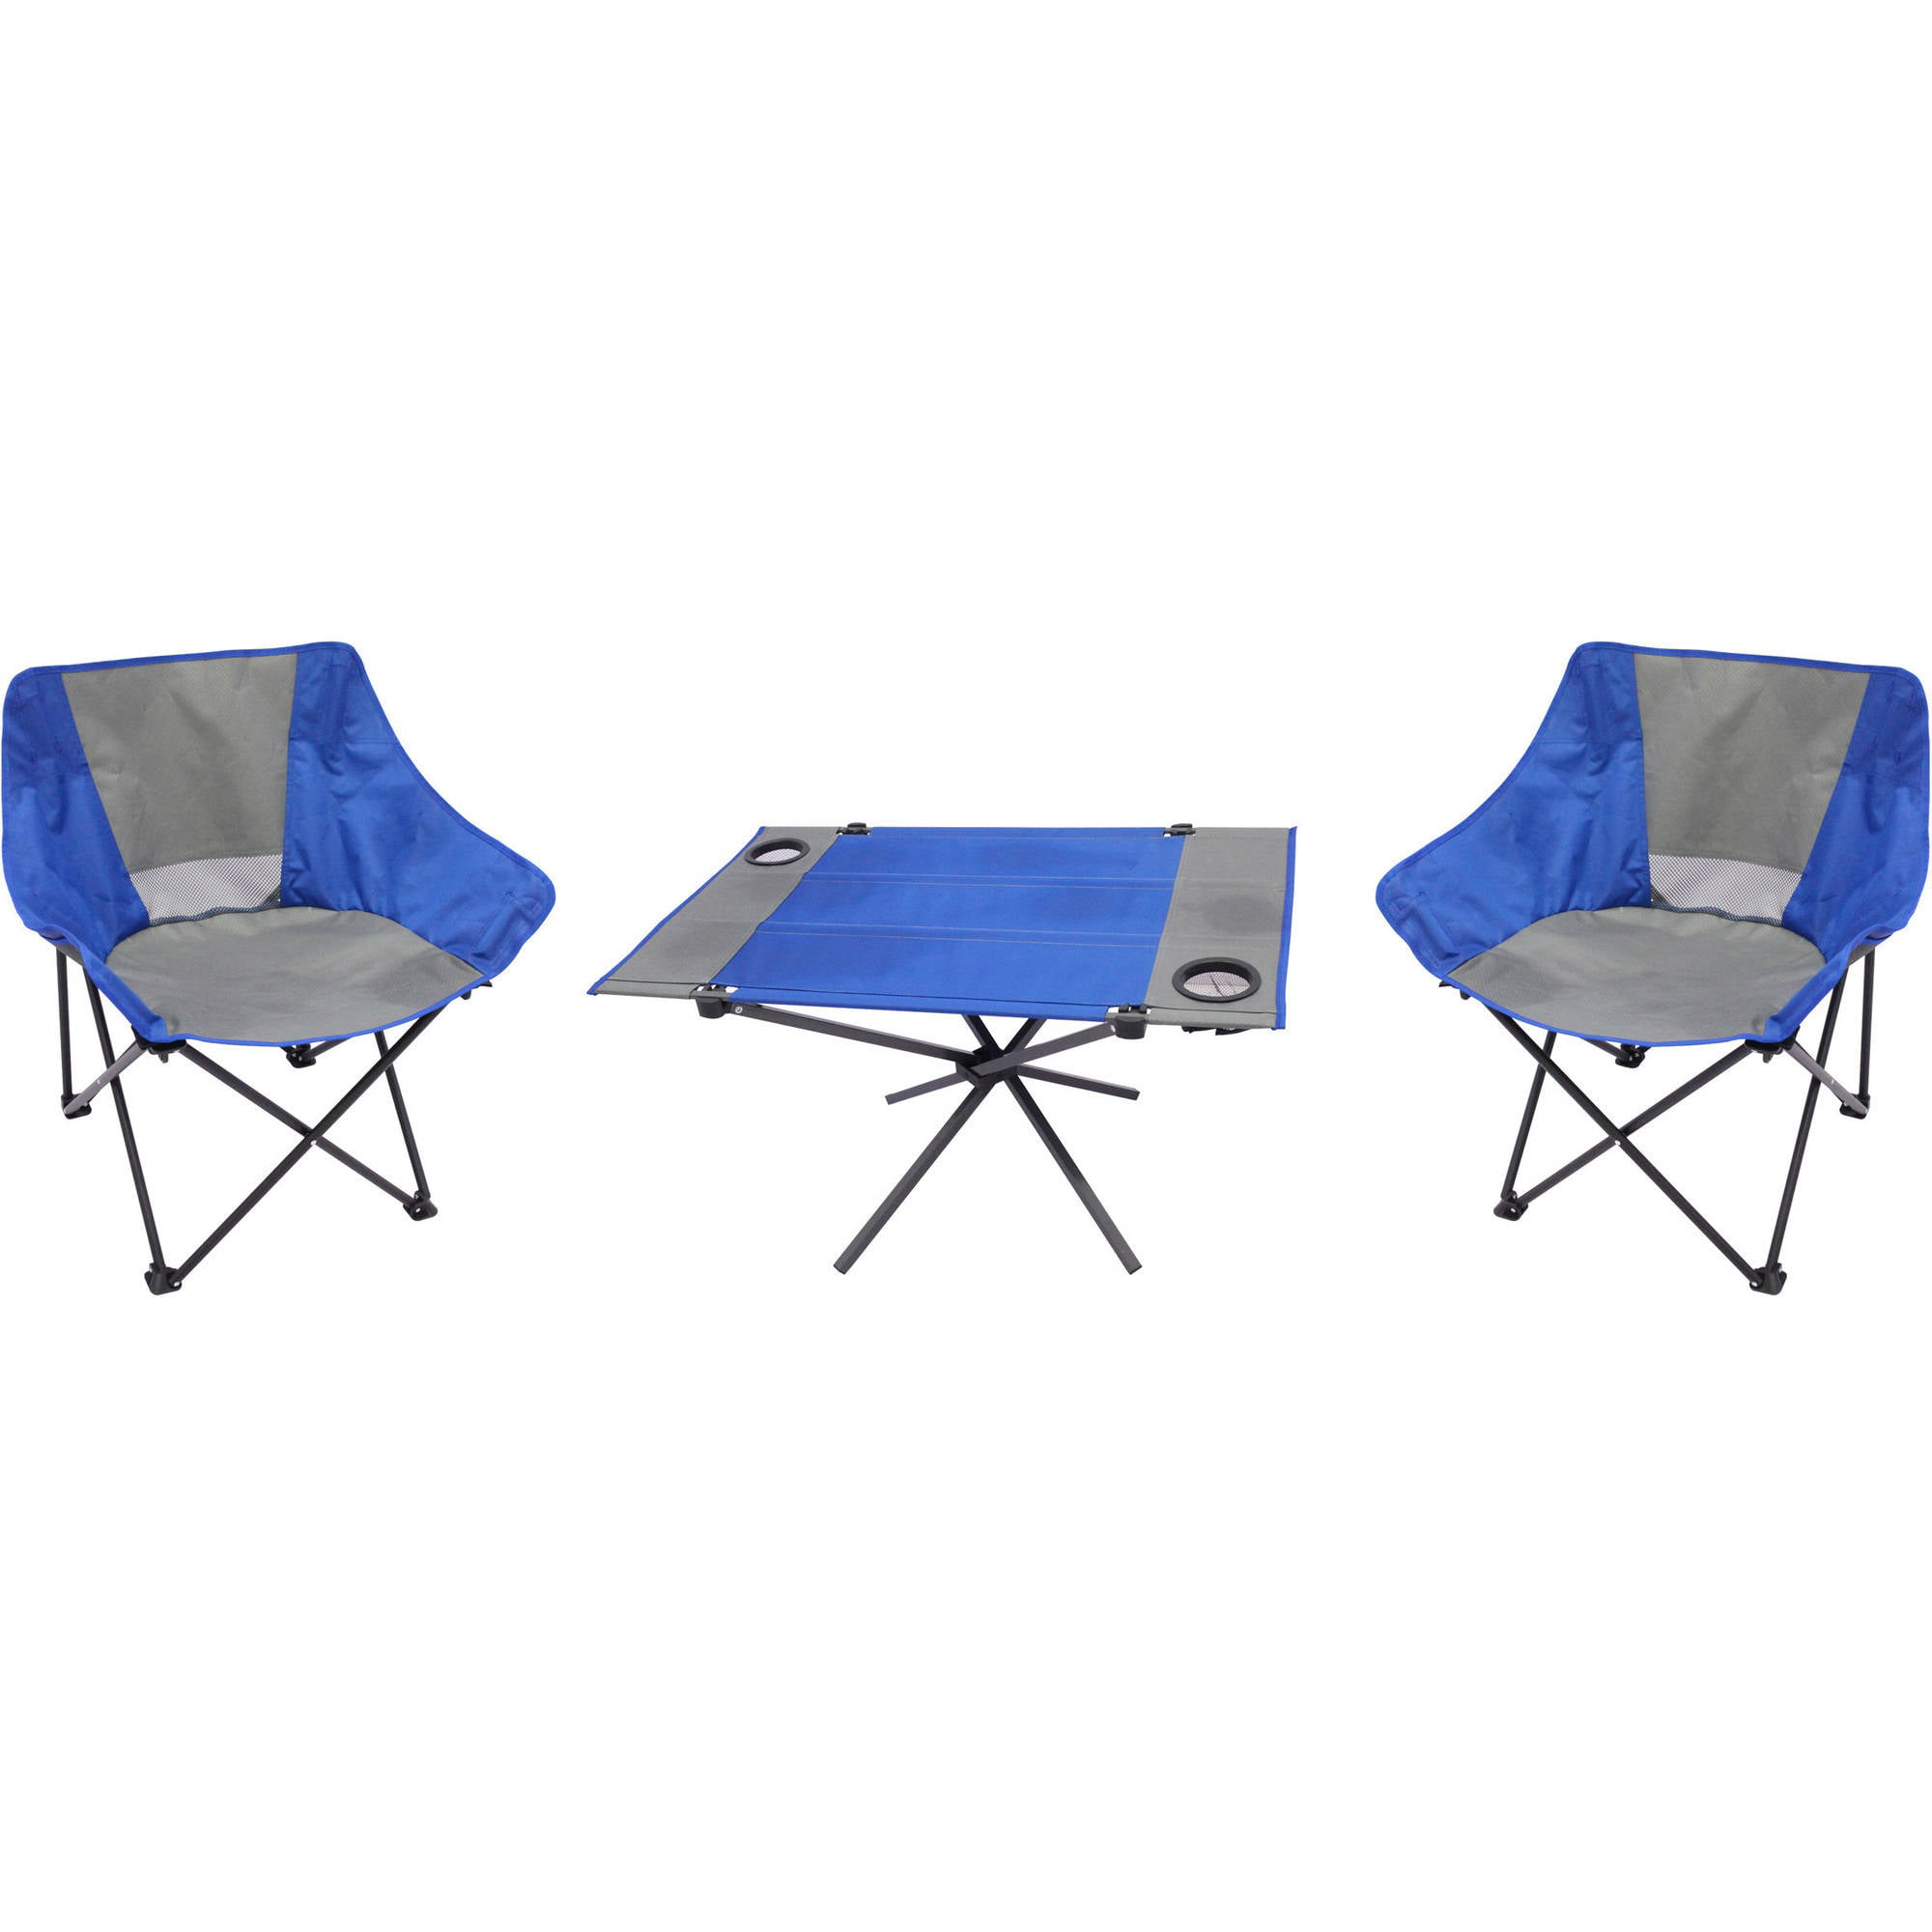 Ozark Trail 3-Piece Portable Table and Chair Set  sc 1 st  Walmart & Portable Chairs islam-shia.org